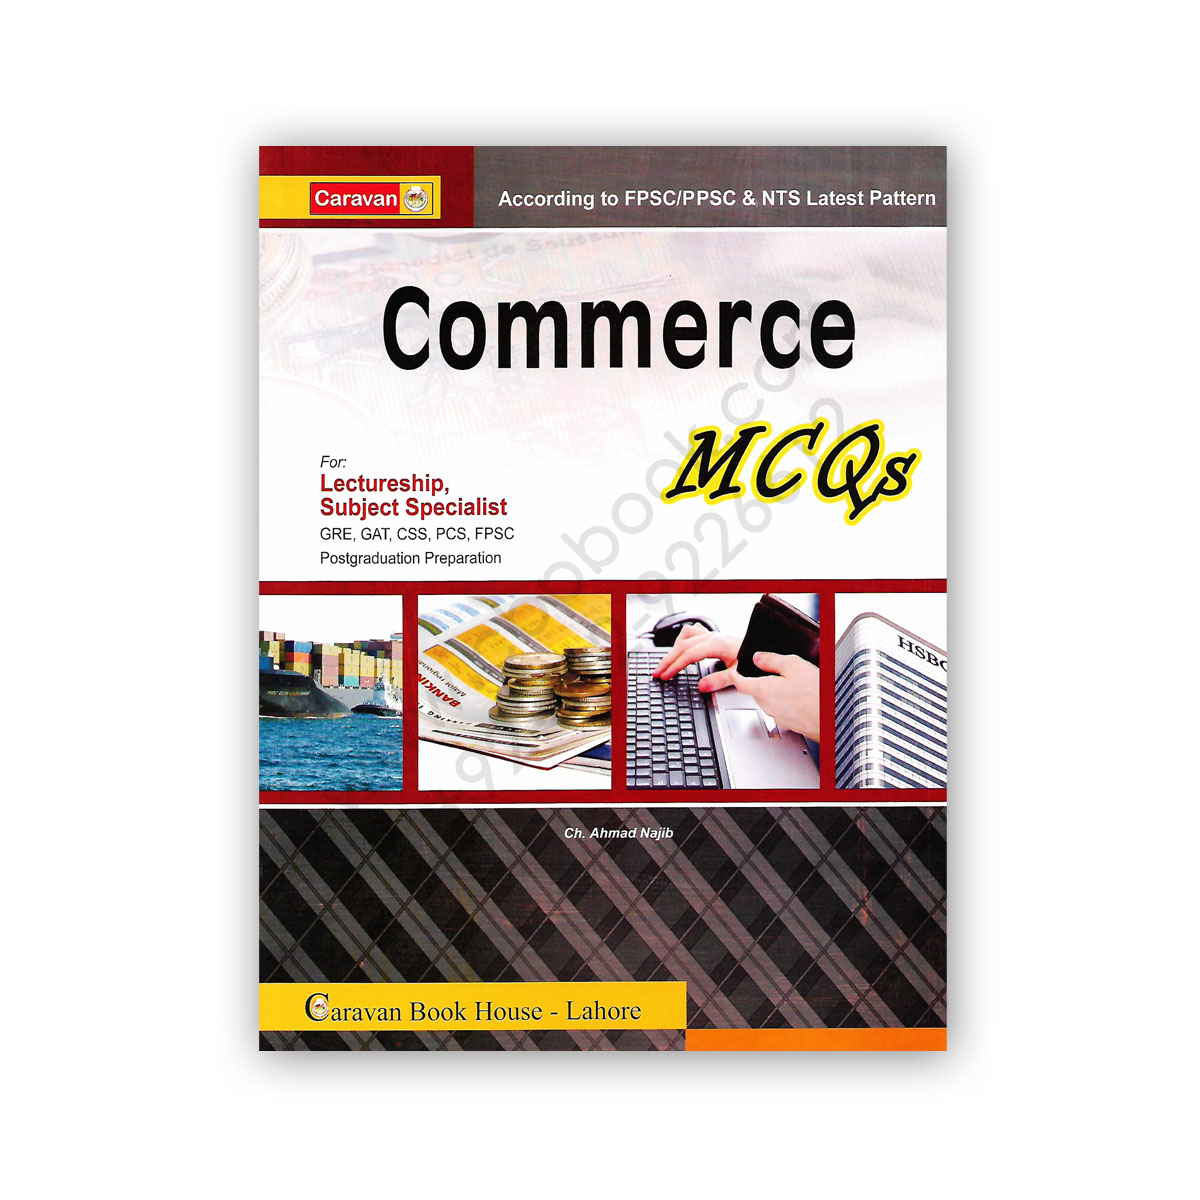 COMMERCE MCQs For Lectureship By Ch Ahmed Najib - CARAVAN BOOK